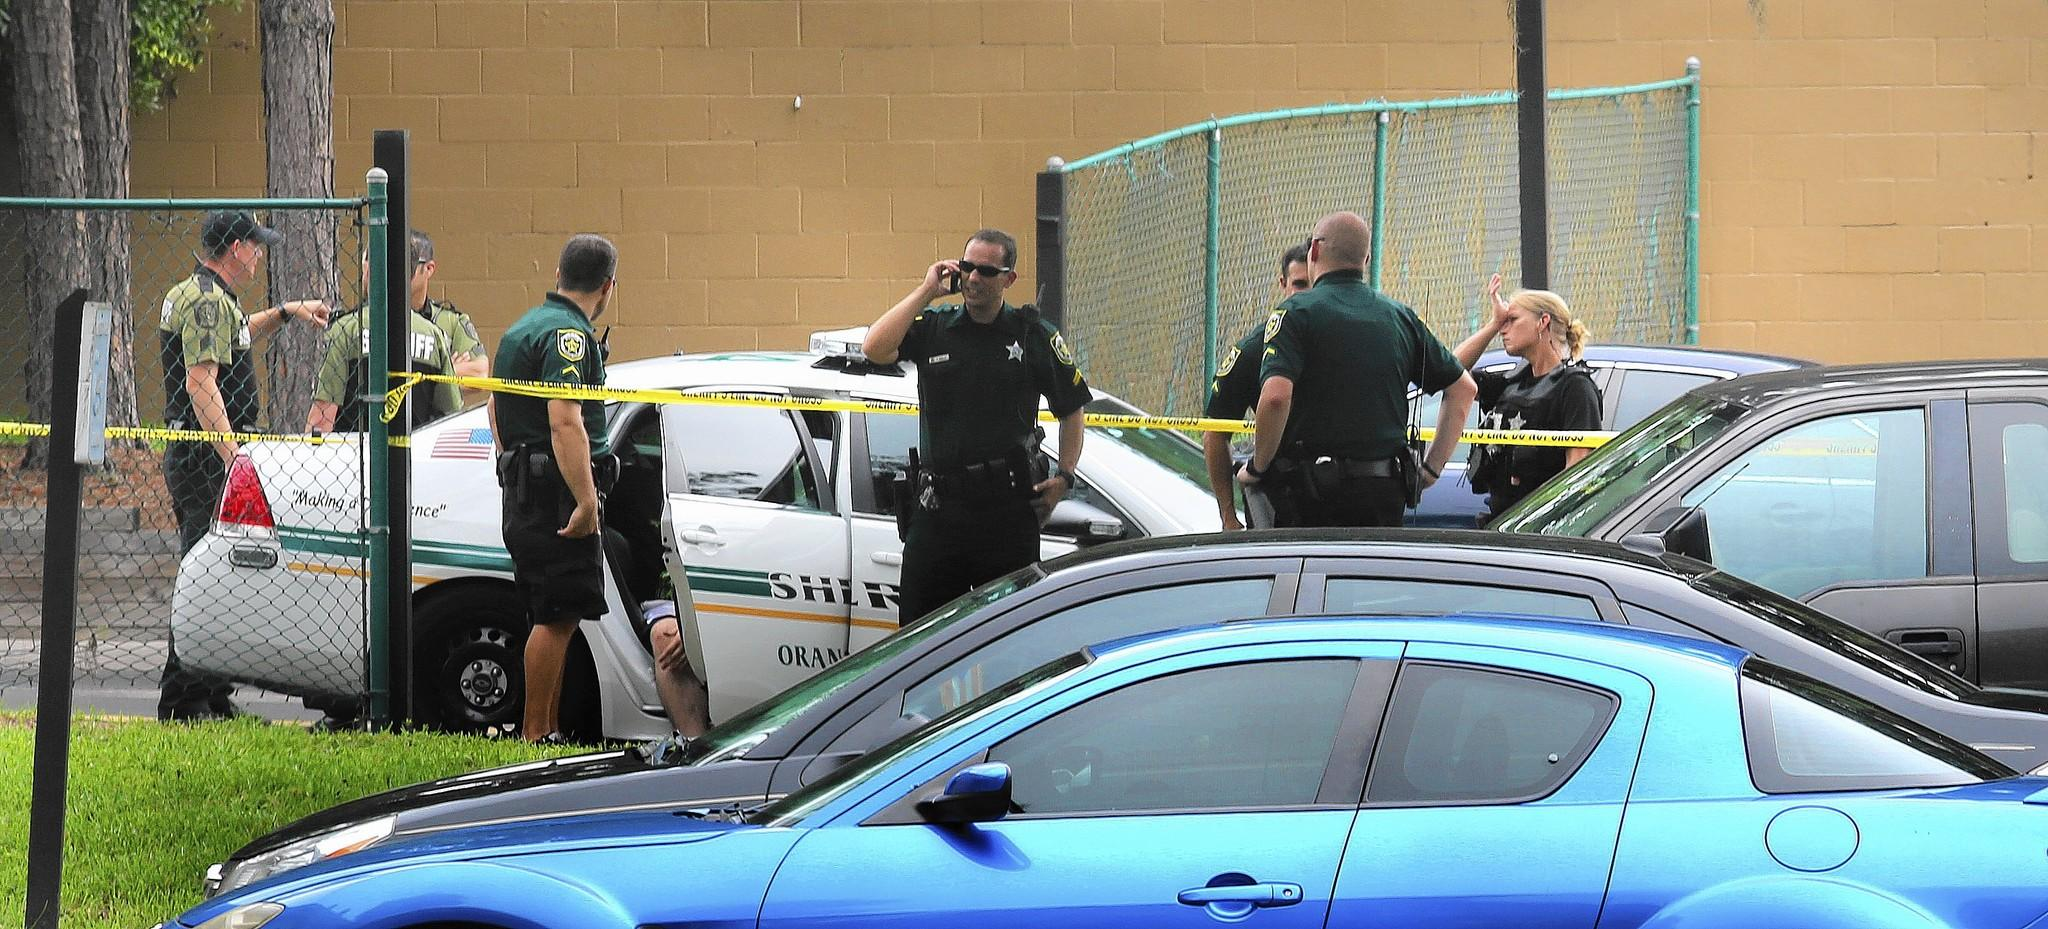 Orange County sheriffs on the scene of the double homicide in Pine Hills, Tuesday, August 5, 2014.